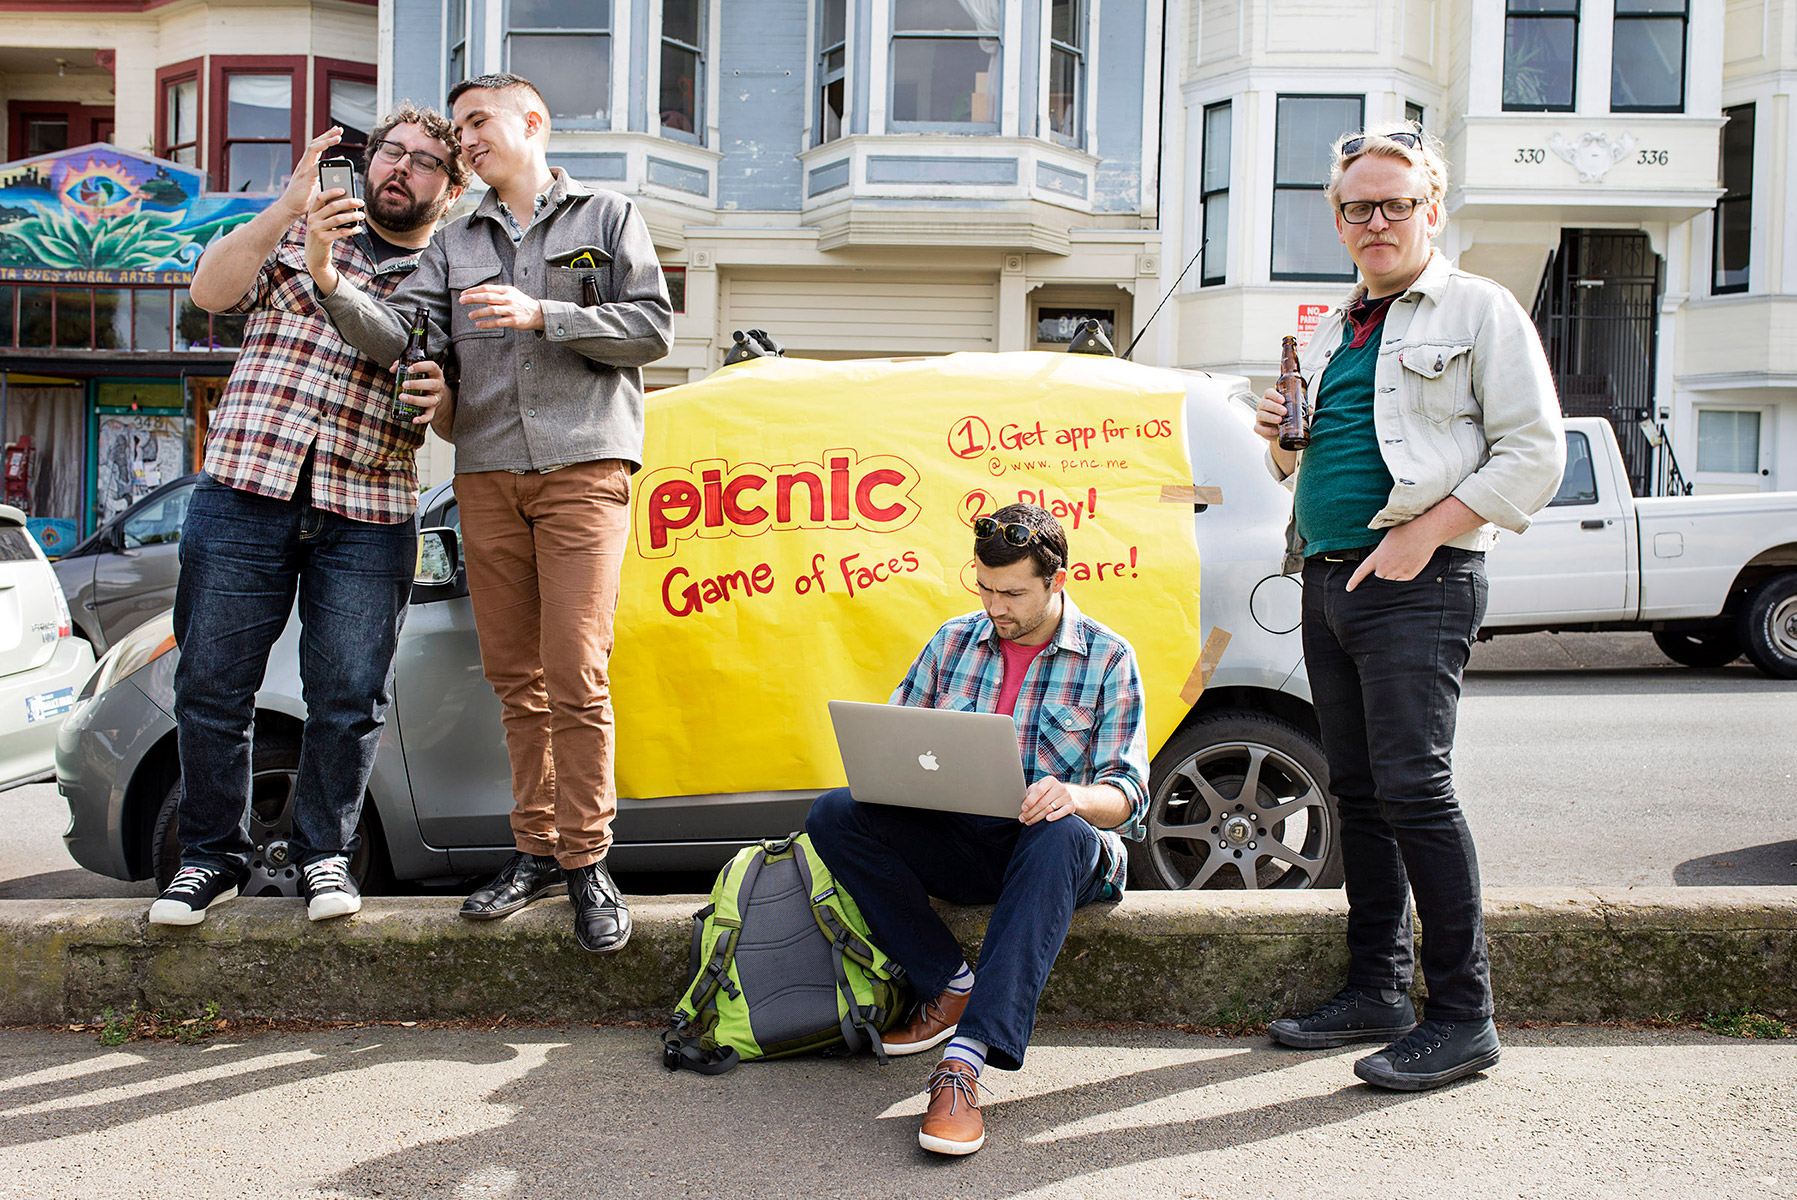 Andrew Hines, center, works on trying fix a problem during a beta launch party for his app Picnic with his co-founder Cassidy Clawson, second from right, at Precita Park in San Francisco, California in March 2015. Picnic is a game that involves taking selfie photos in response to challenges to act out certain emotions. The launch had to be postponed after the co-founders realized the app wasn't working because Apple's TestFlight program, which was necessary for the beta testing, was down and not working that day.